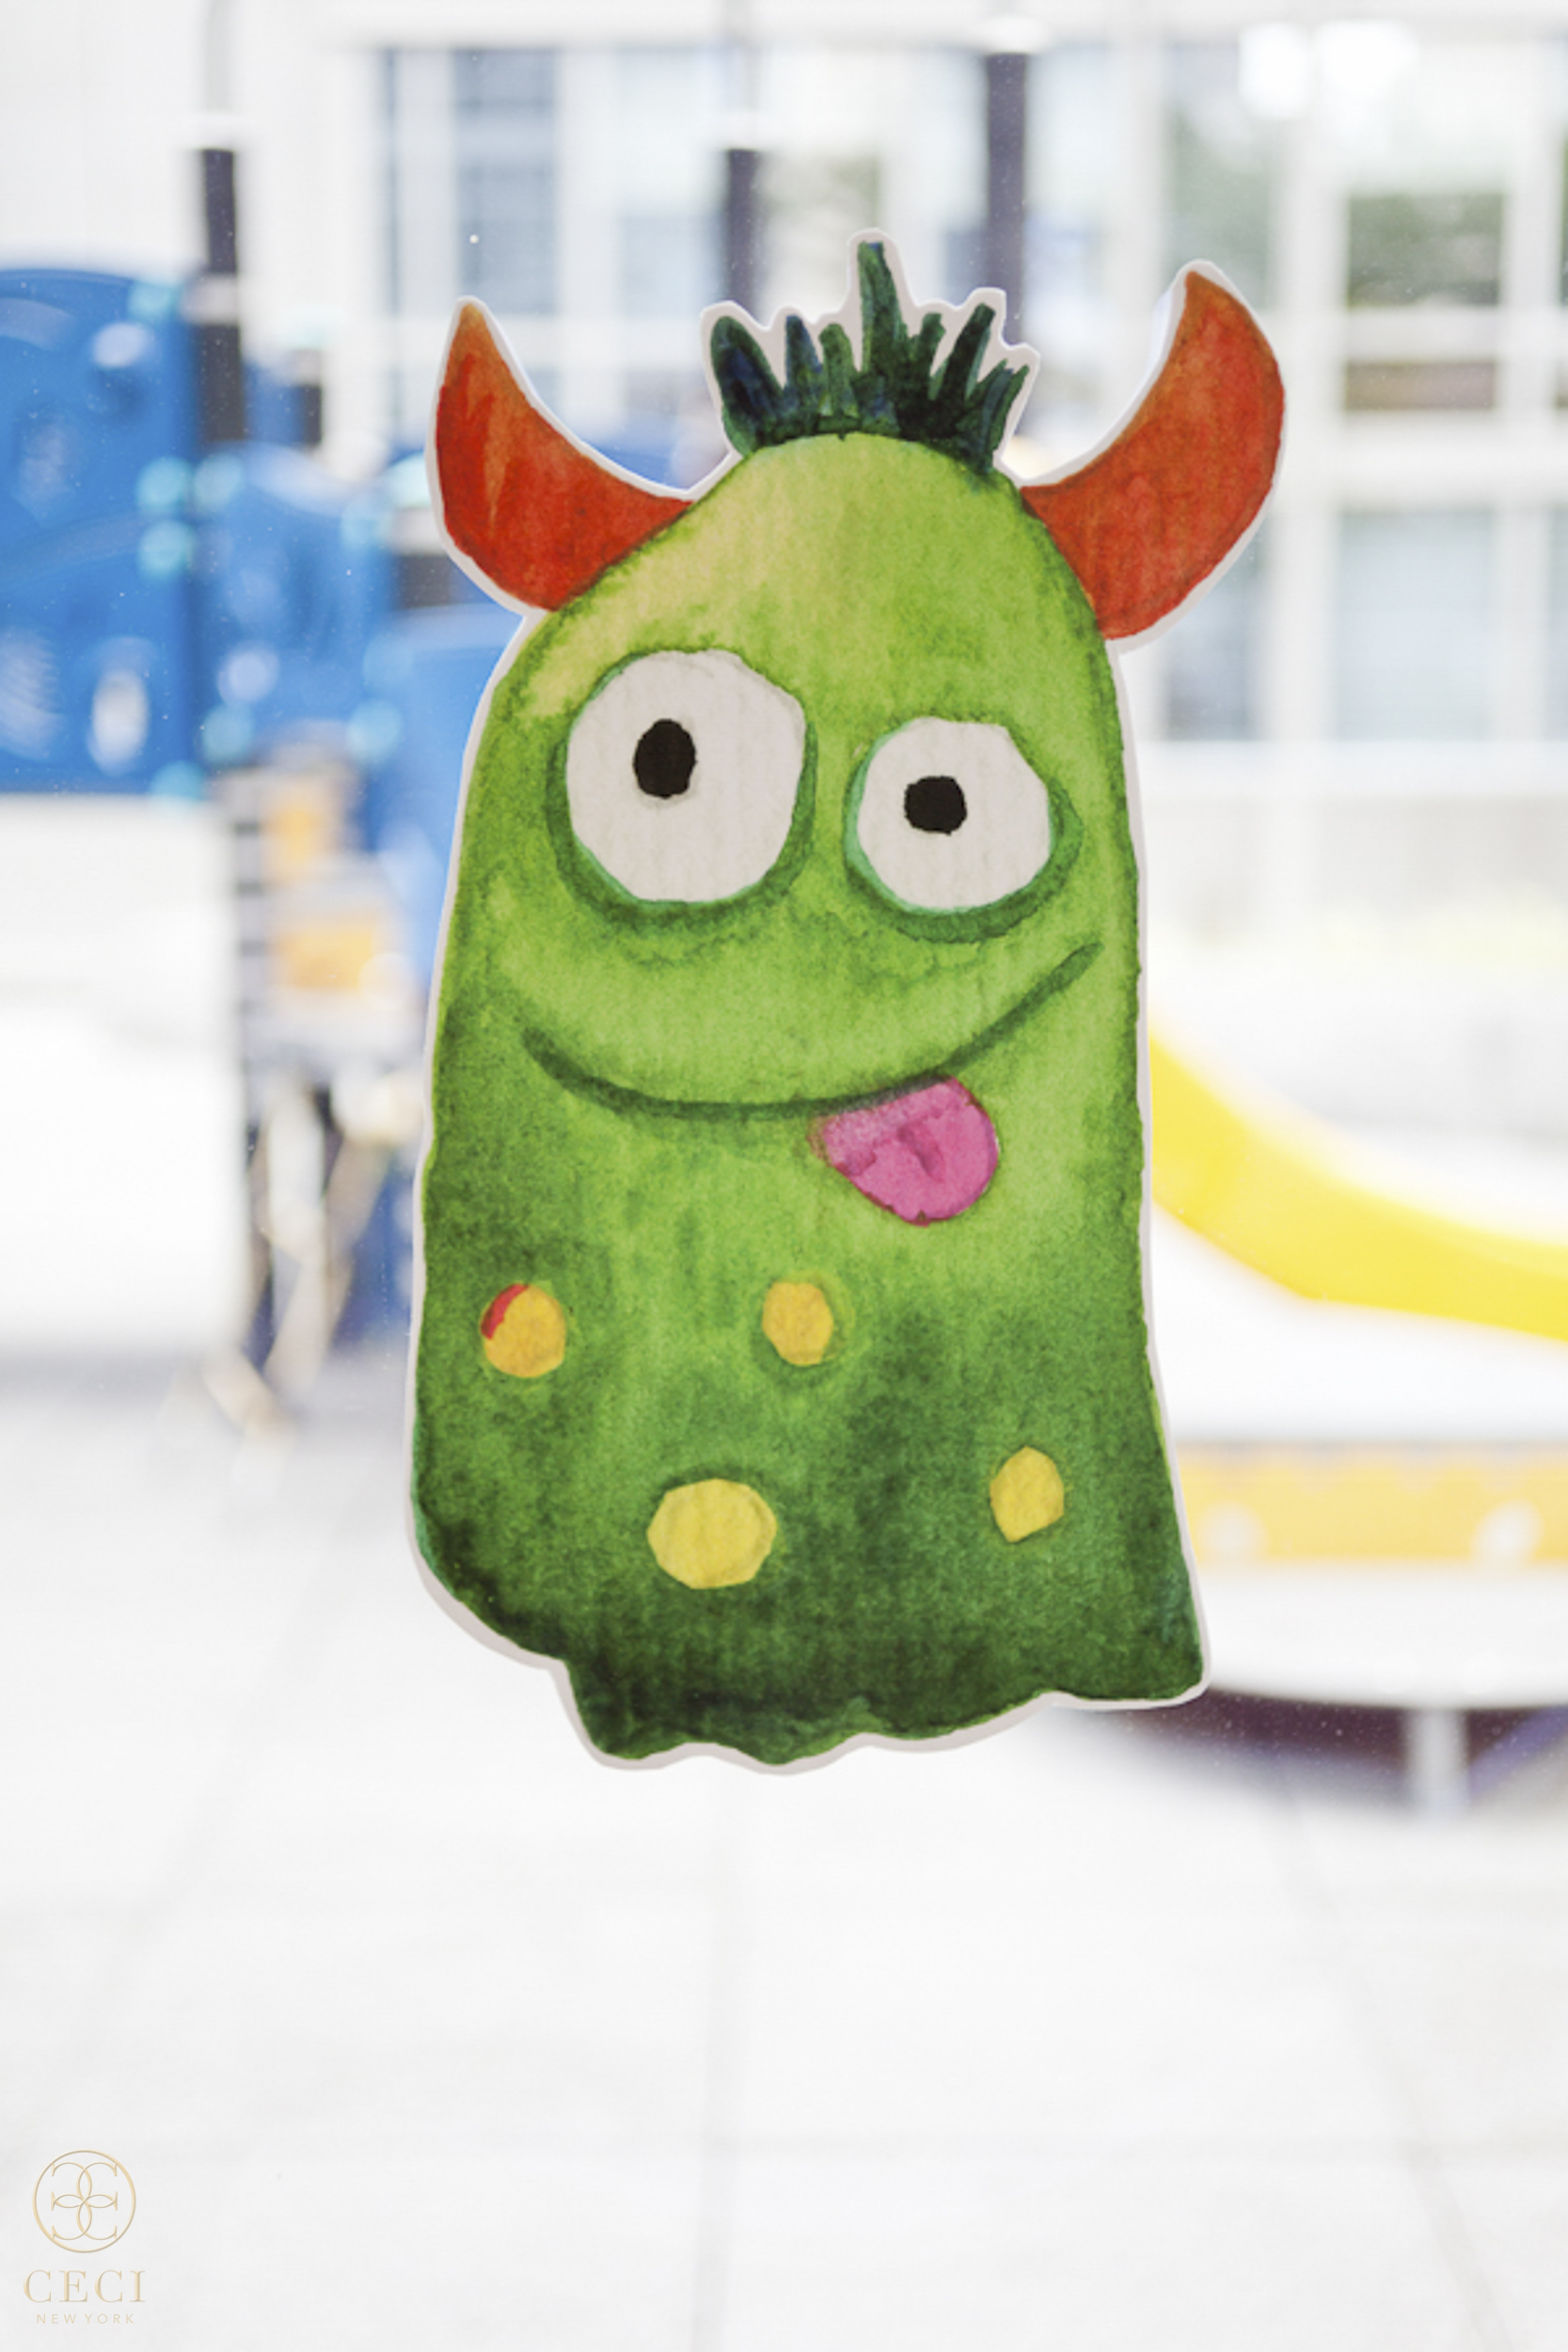 ceci-johnson-mason-birthday-party-2-second-new-york-city-monster-party-theme-kids-cute-creative-characters-12.jpg